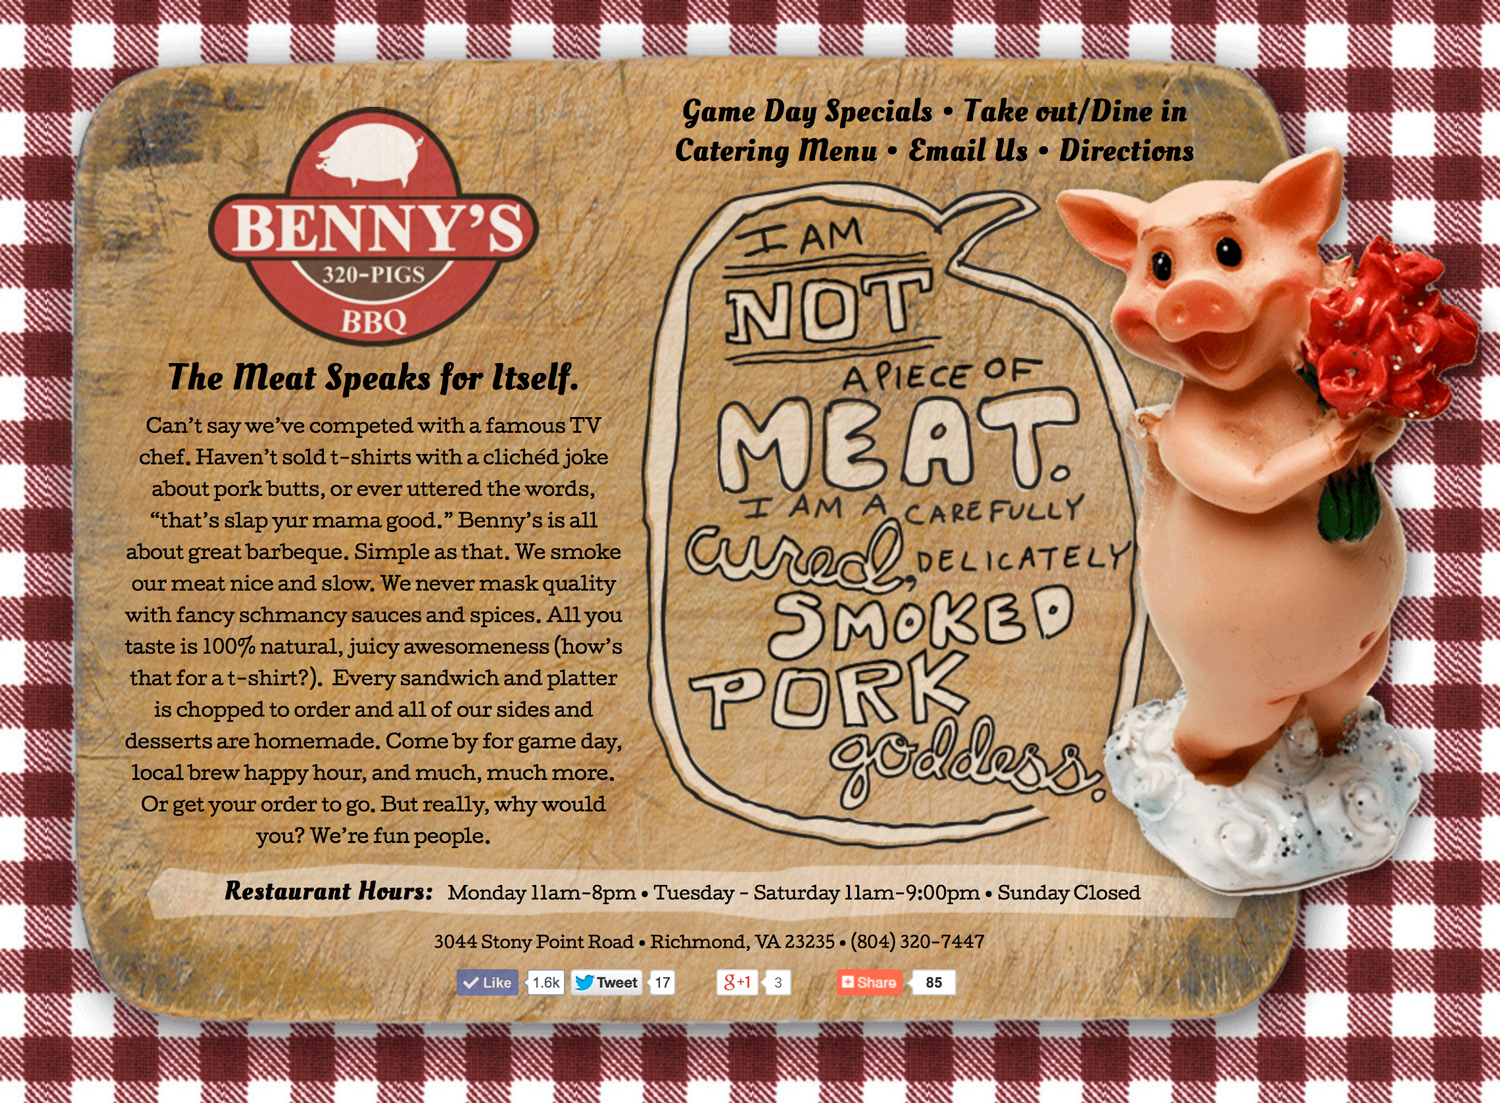 Benny's BBQ (Website)